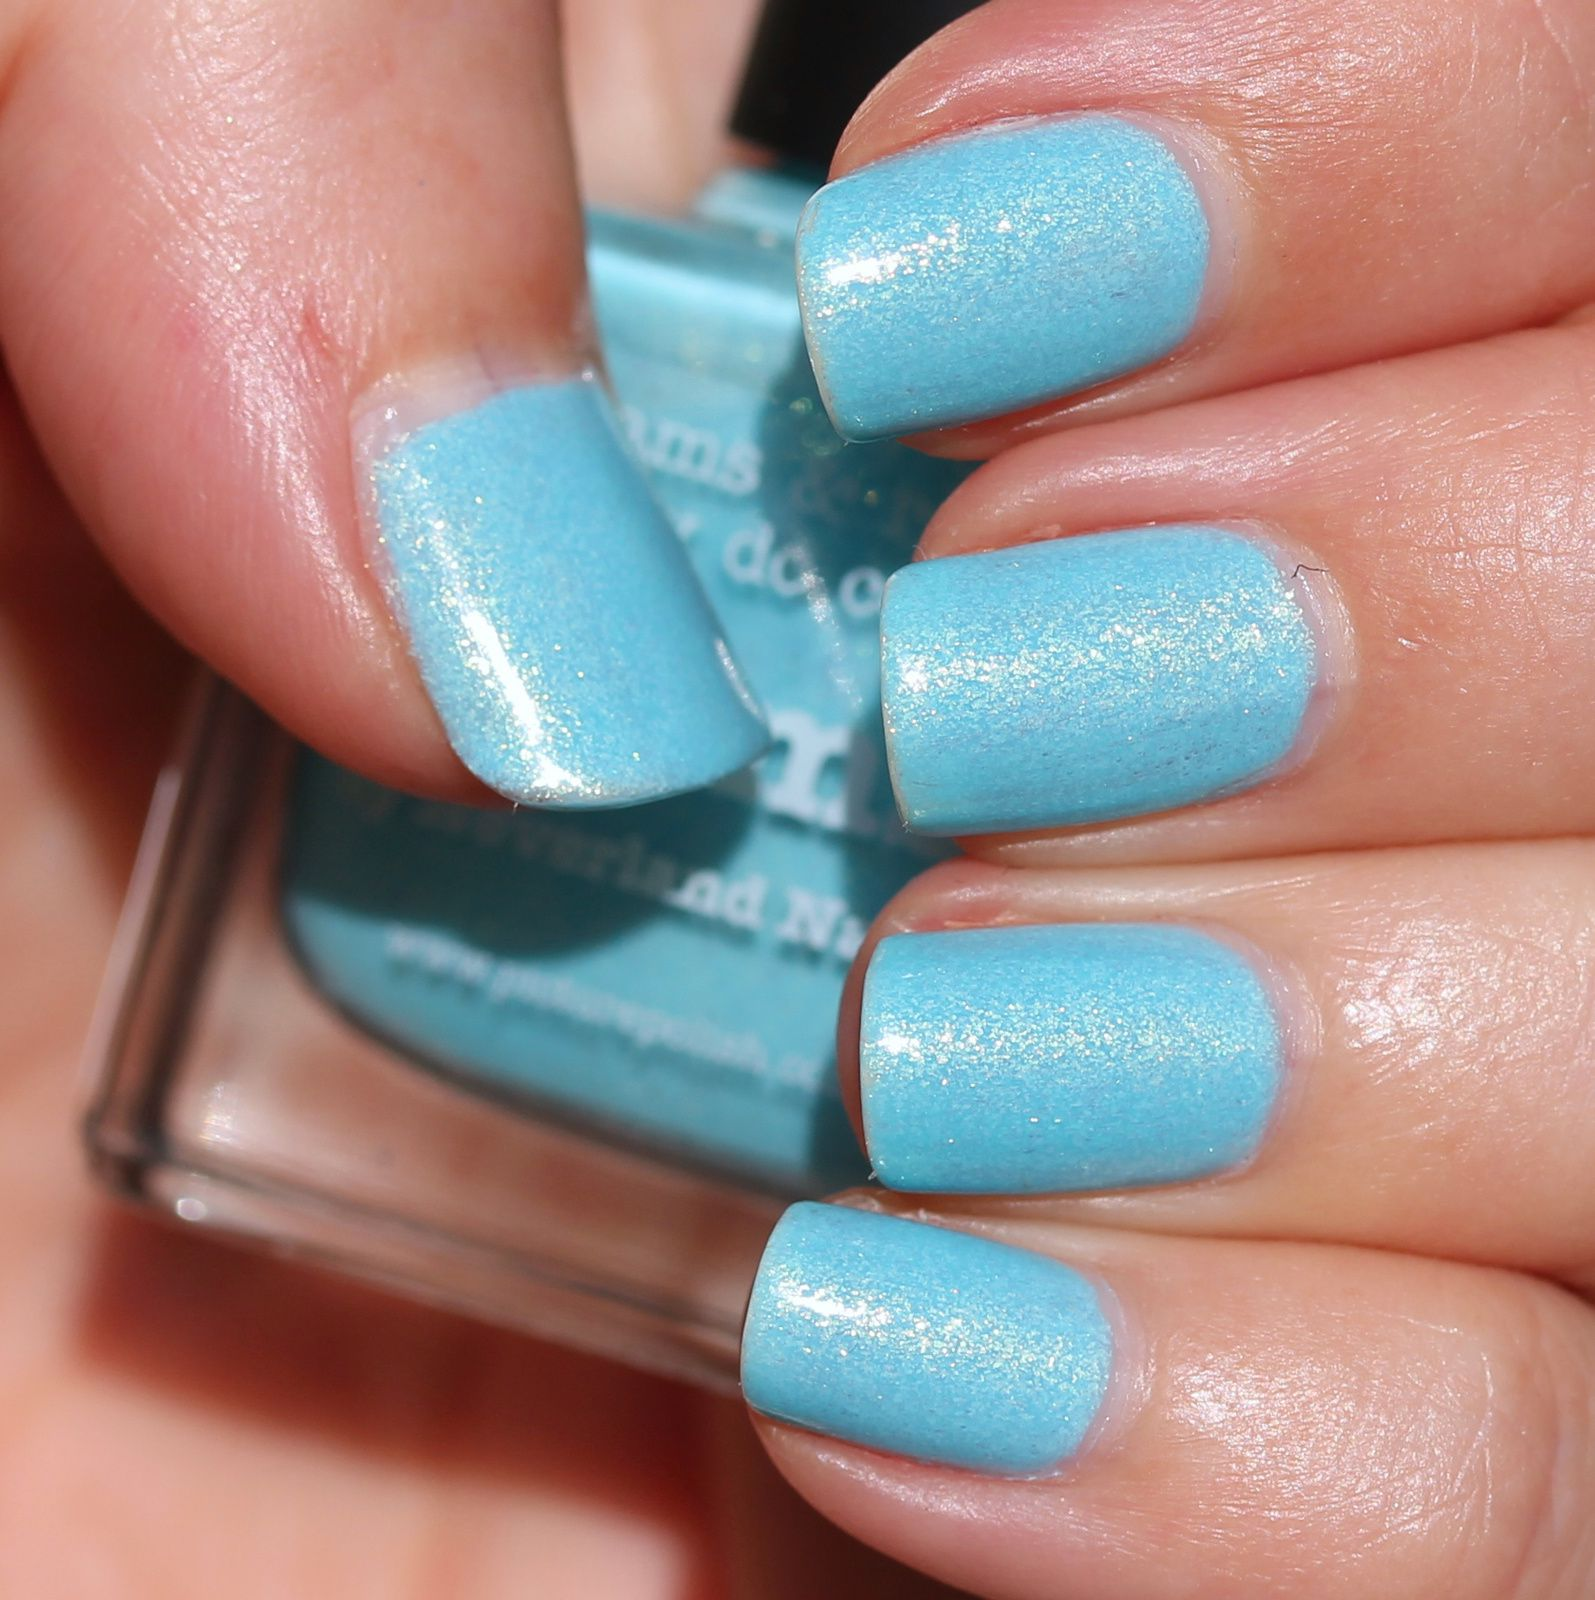 Mavala Base Coat Nail Shield 2-Phase Reinforcer and Protector / piCture pOlish Whimsy / Sally Hansen Miracle Gel Top Coat